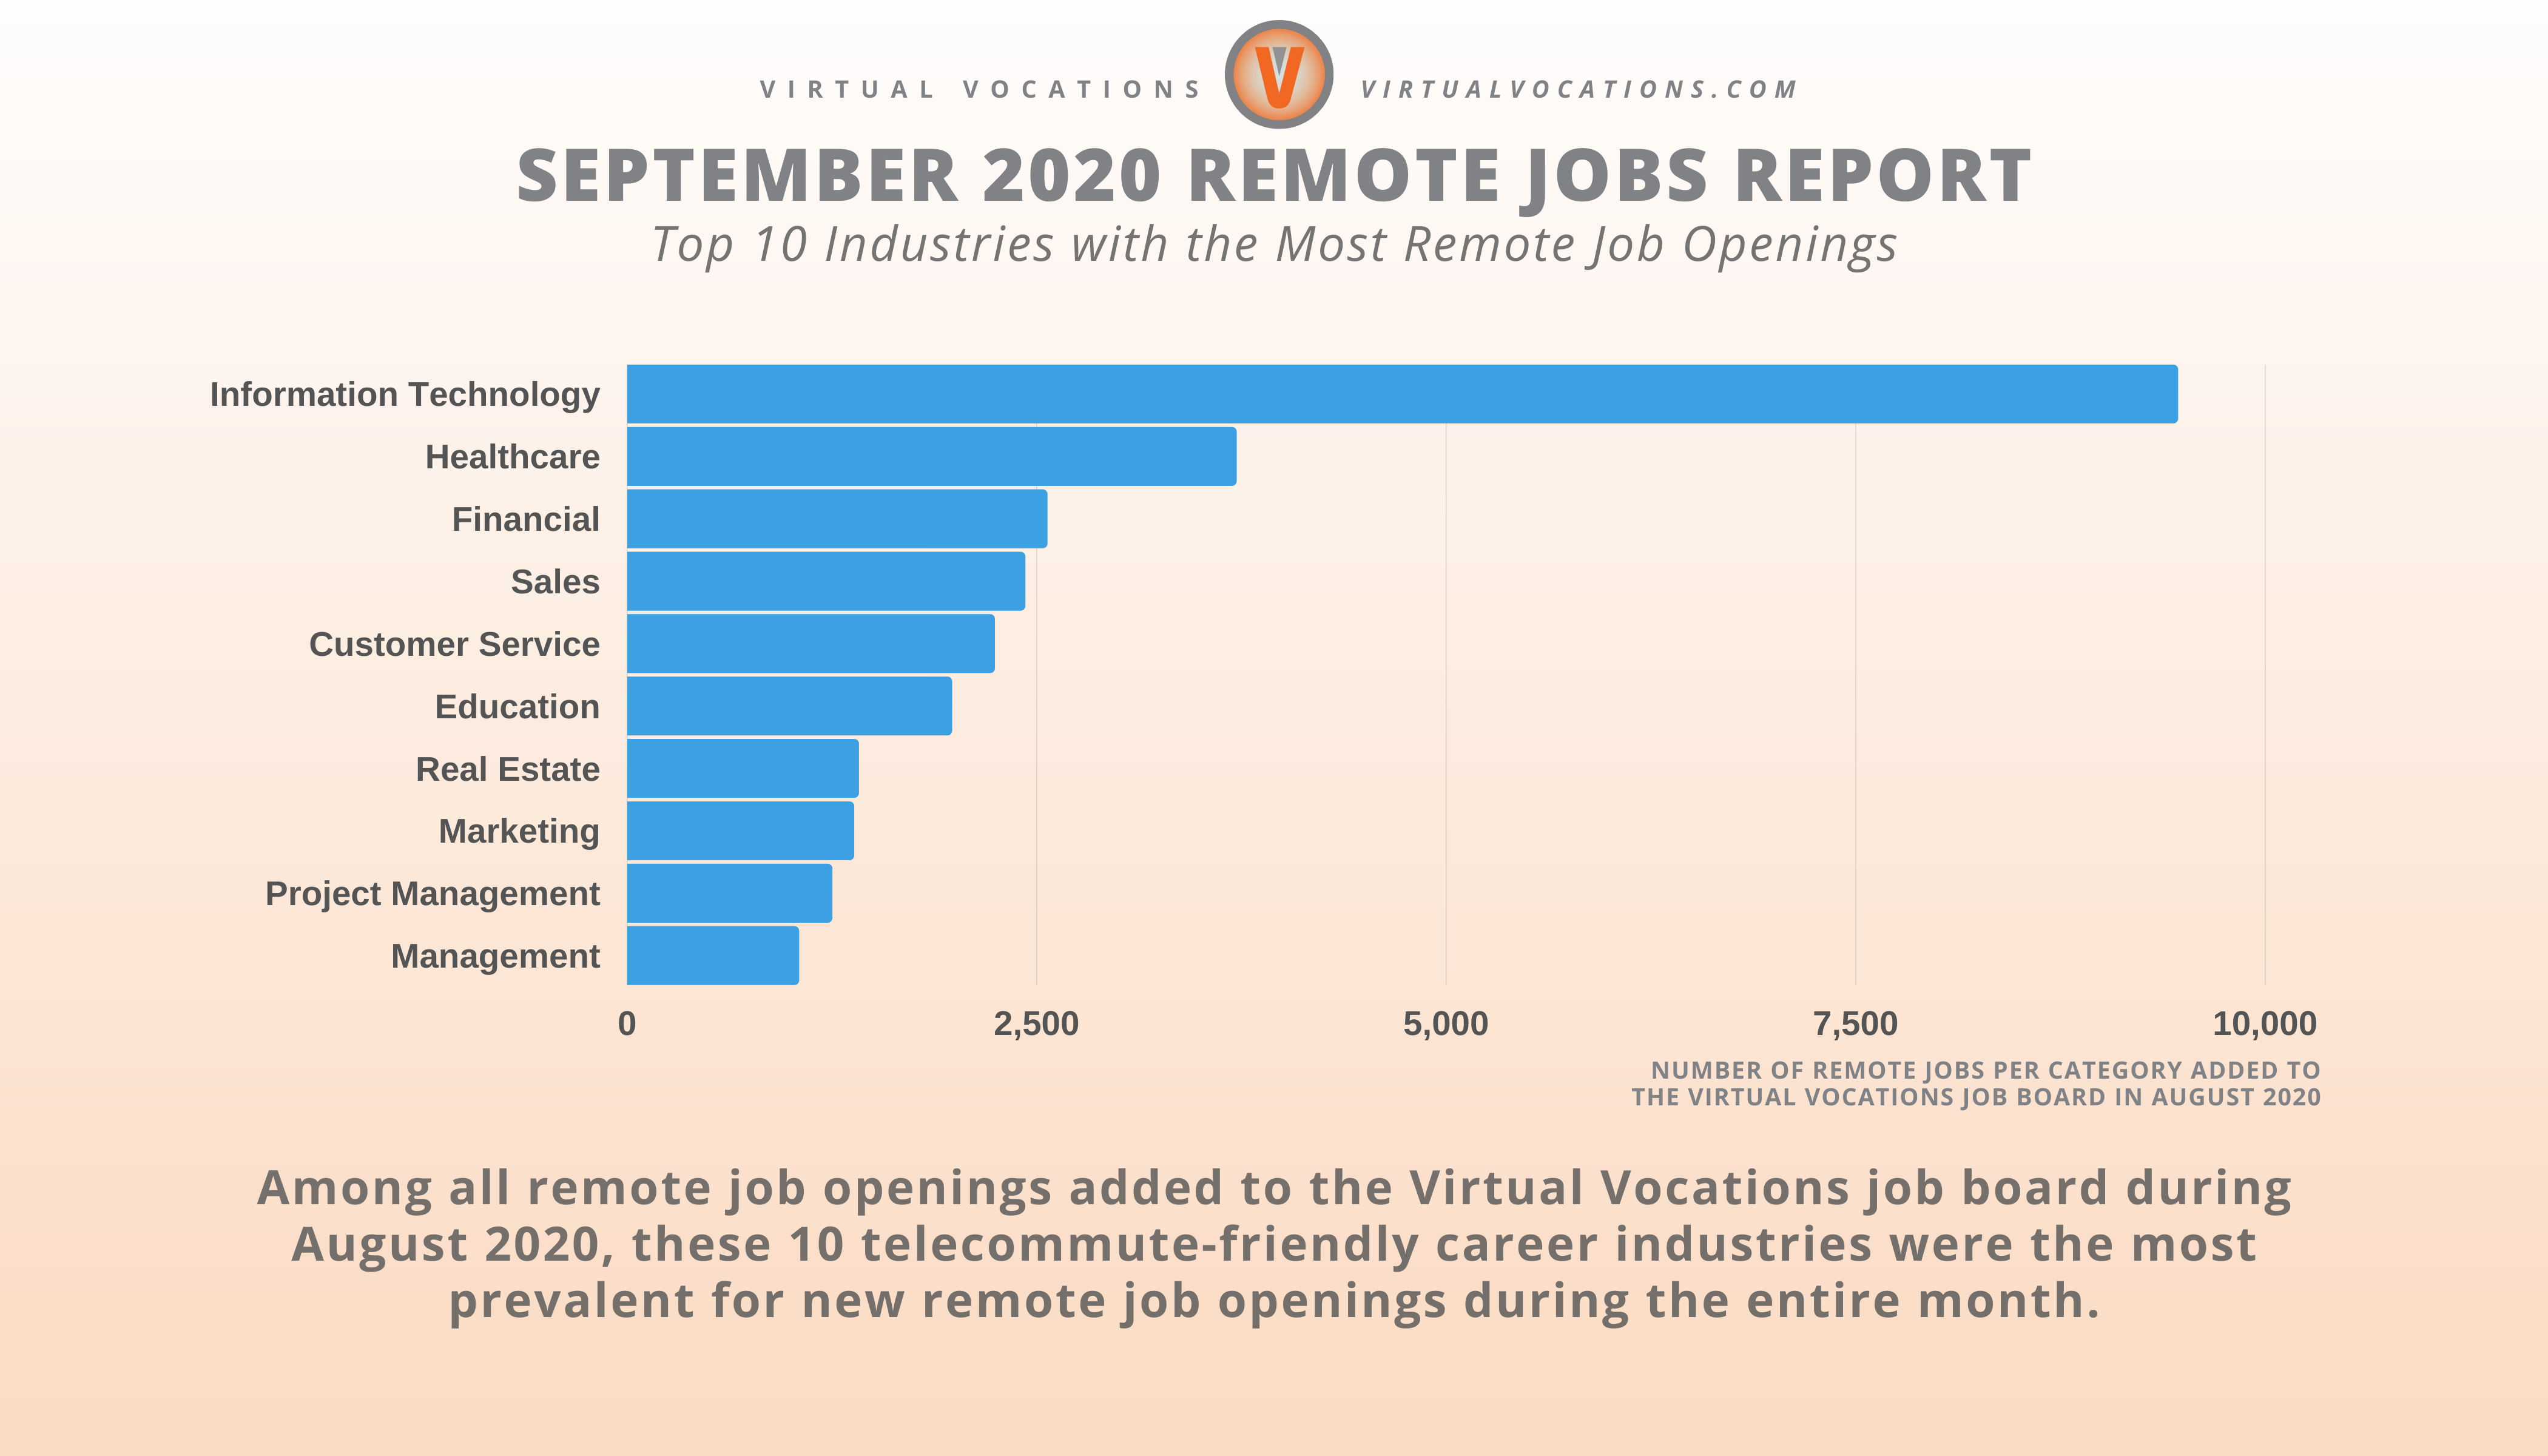 Virtual Vocations - September 2020 Remote Jobs Report - Top 10 Industries with the Most Remote Job Openings Graph